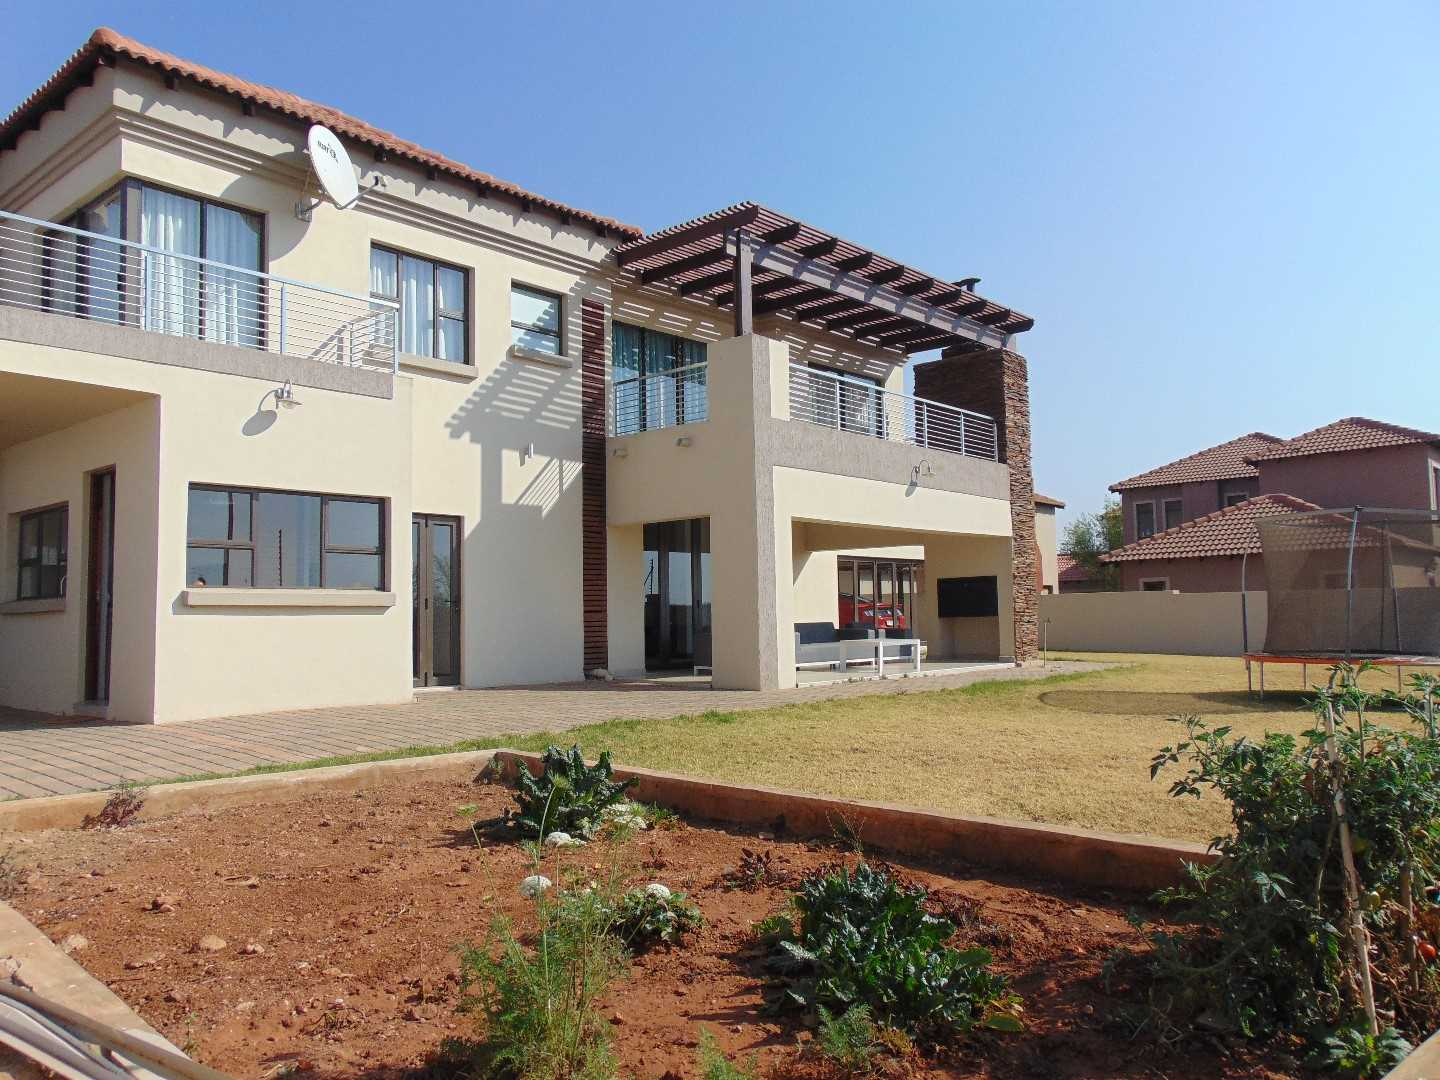 Sigh-wothy 4 bedroom mansion in Monavoni!